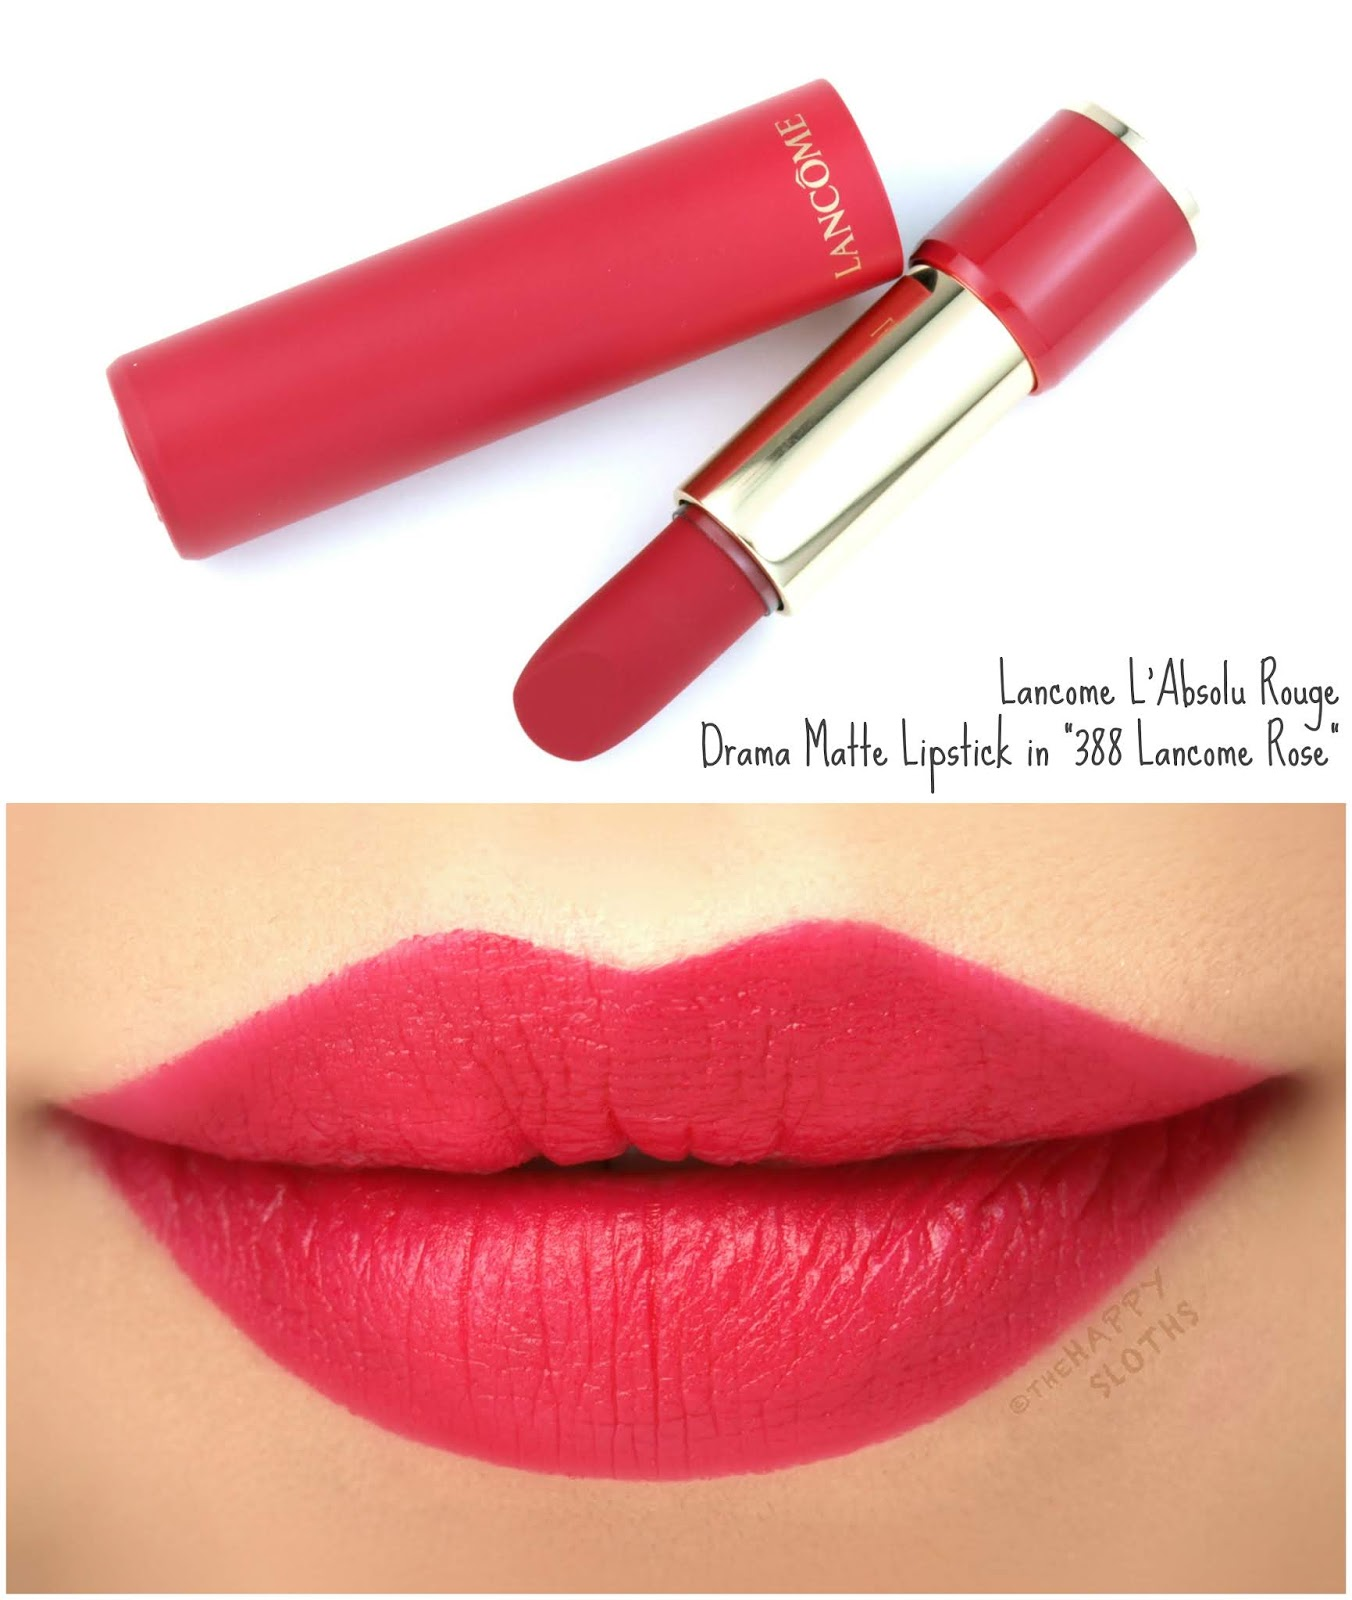 "Lancome | L'Absolu Rouge Drama Matte Lipstick in ""388 Lancome Rose"": Review and Swatches"